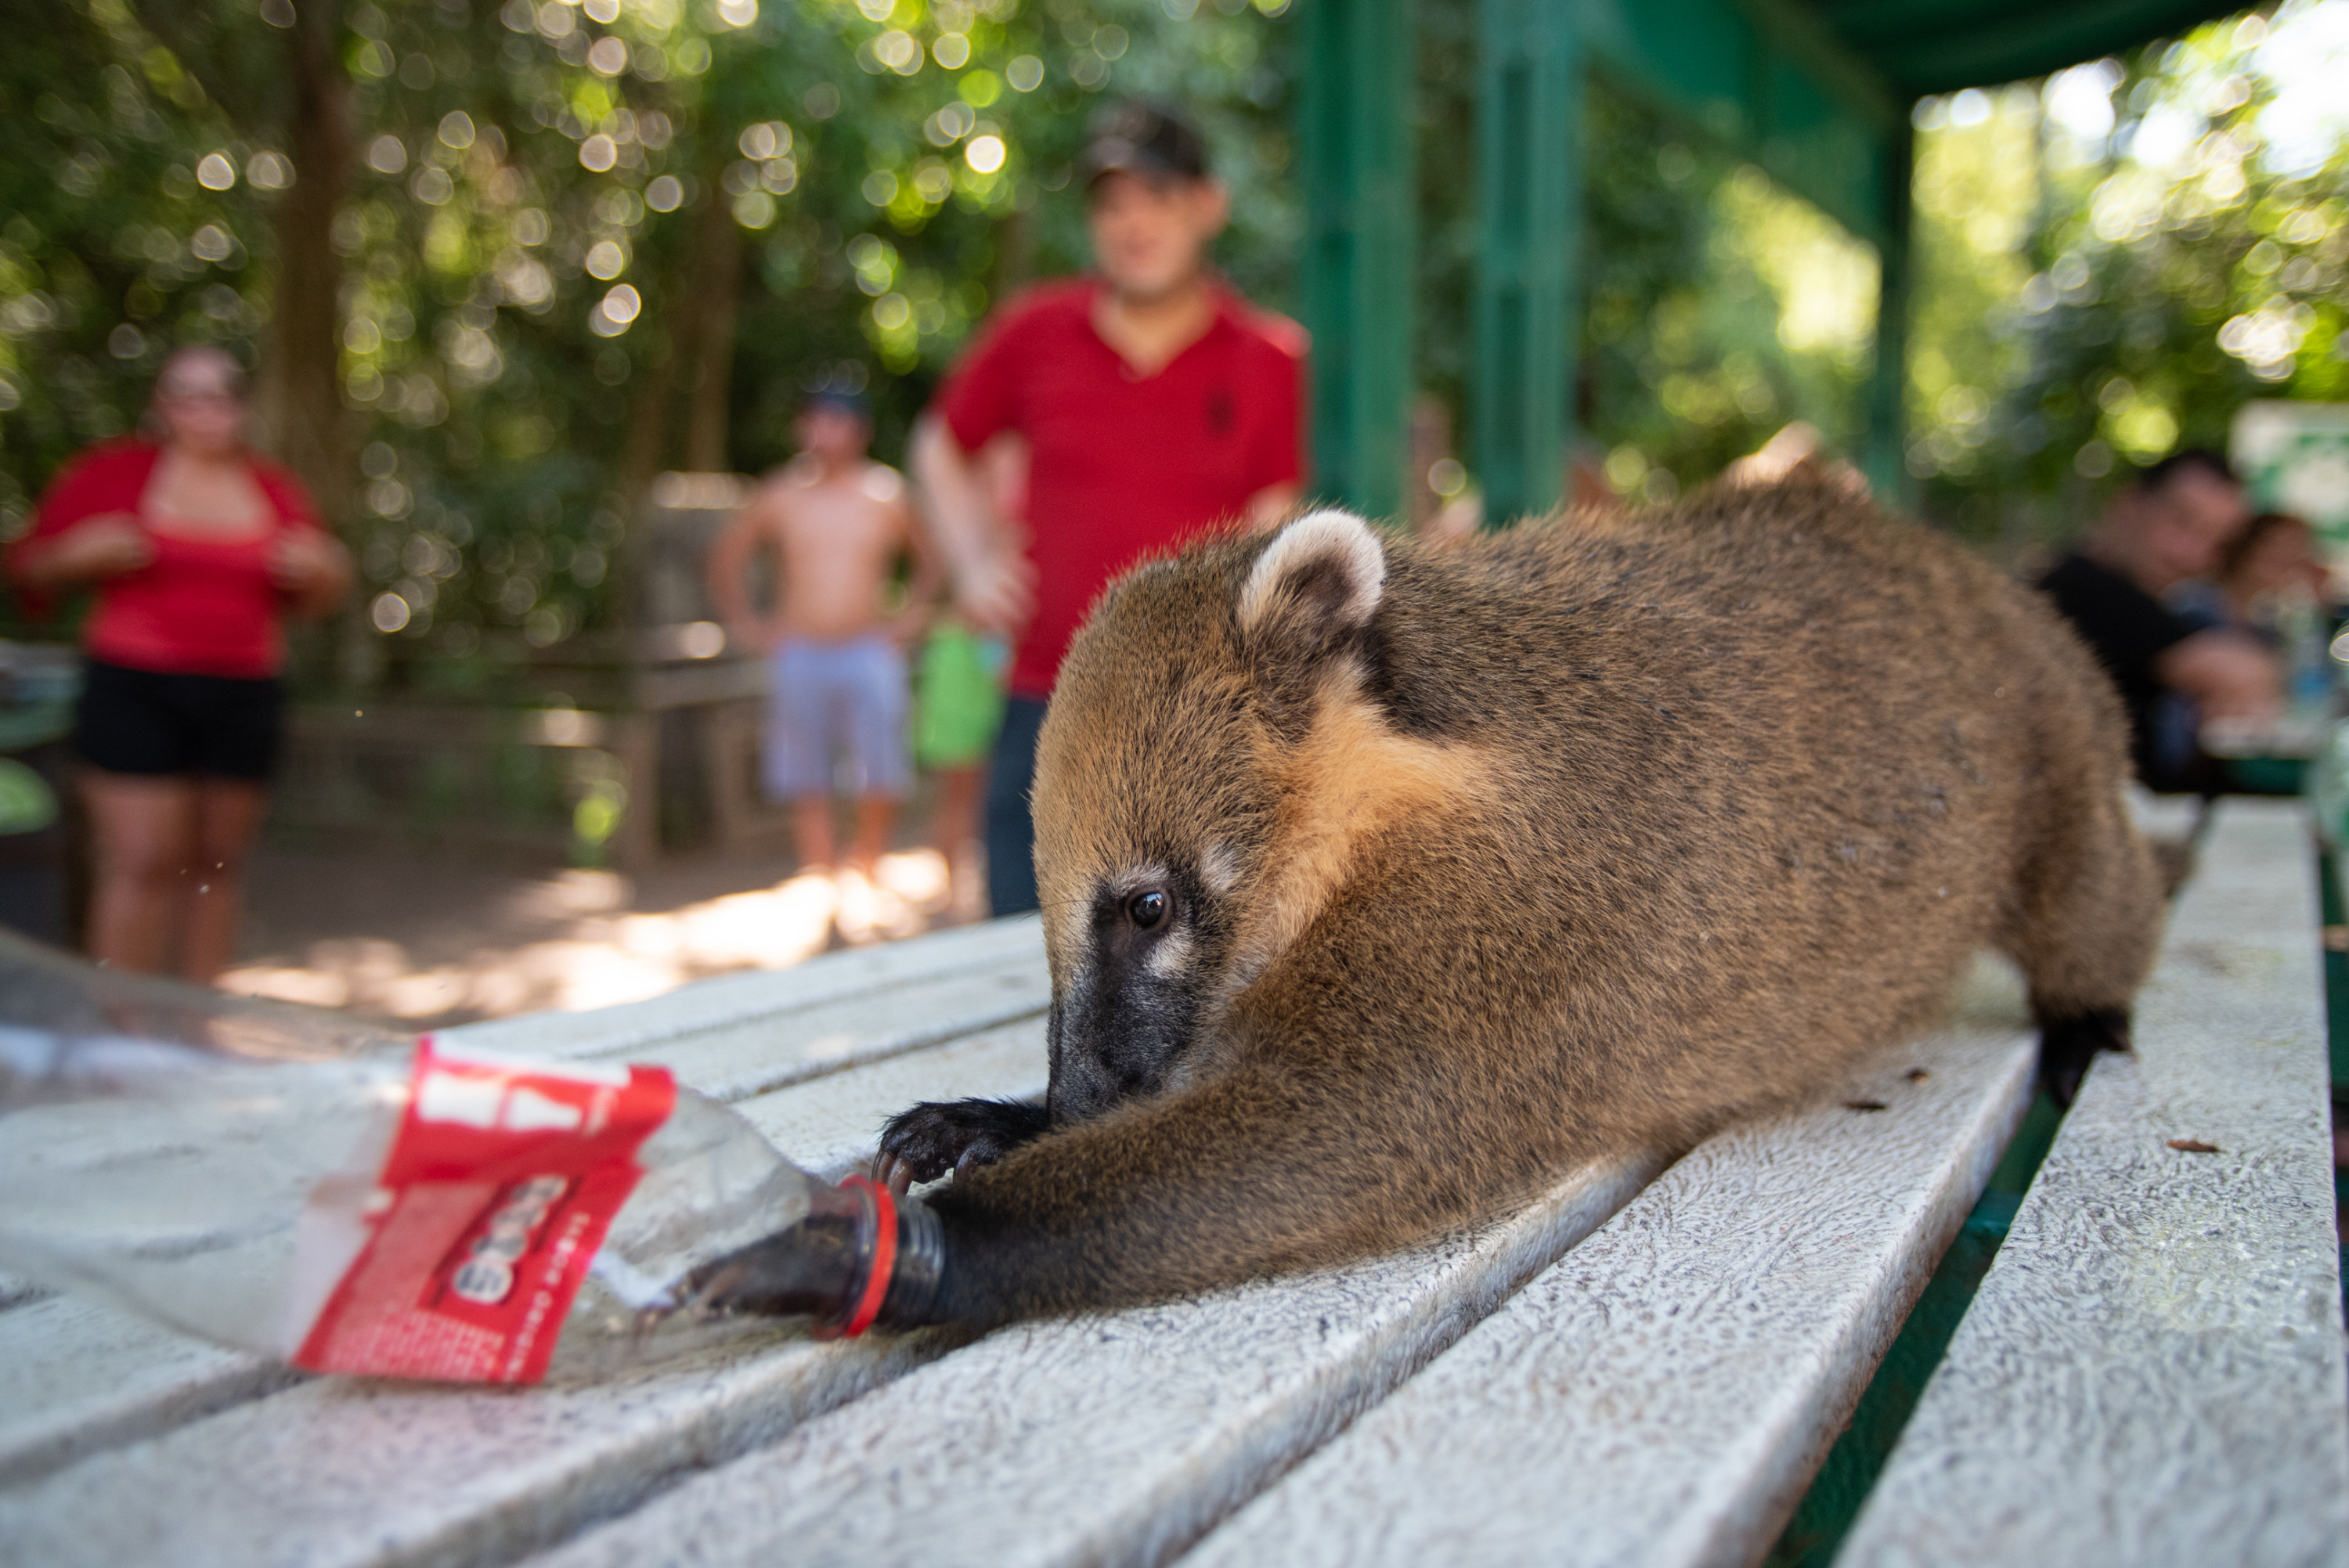 A coatí reaches its paw into an empty Coca-Cola bottle at a table in Iguazú National Park.